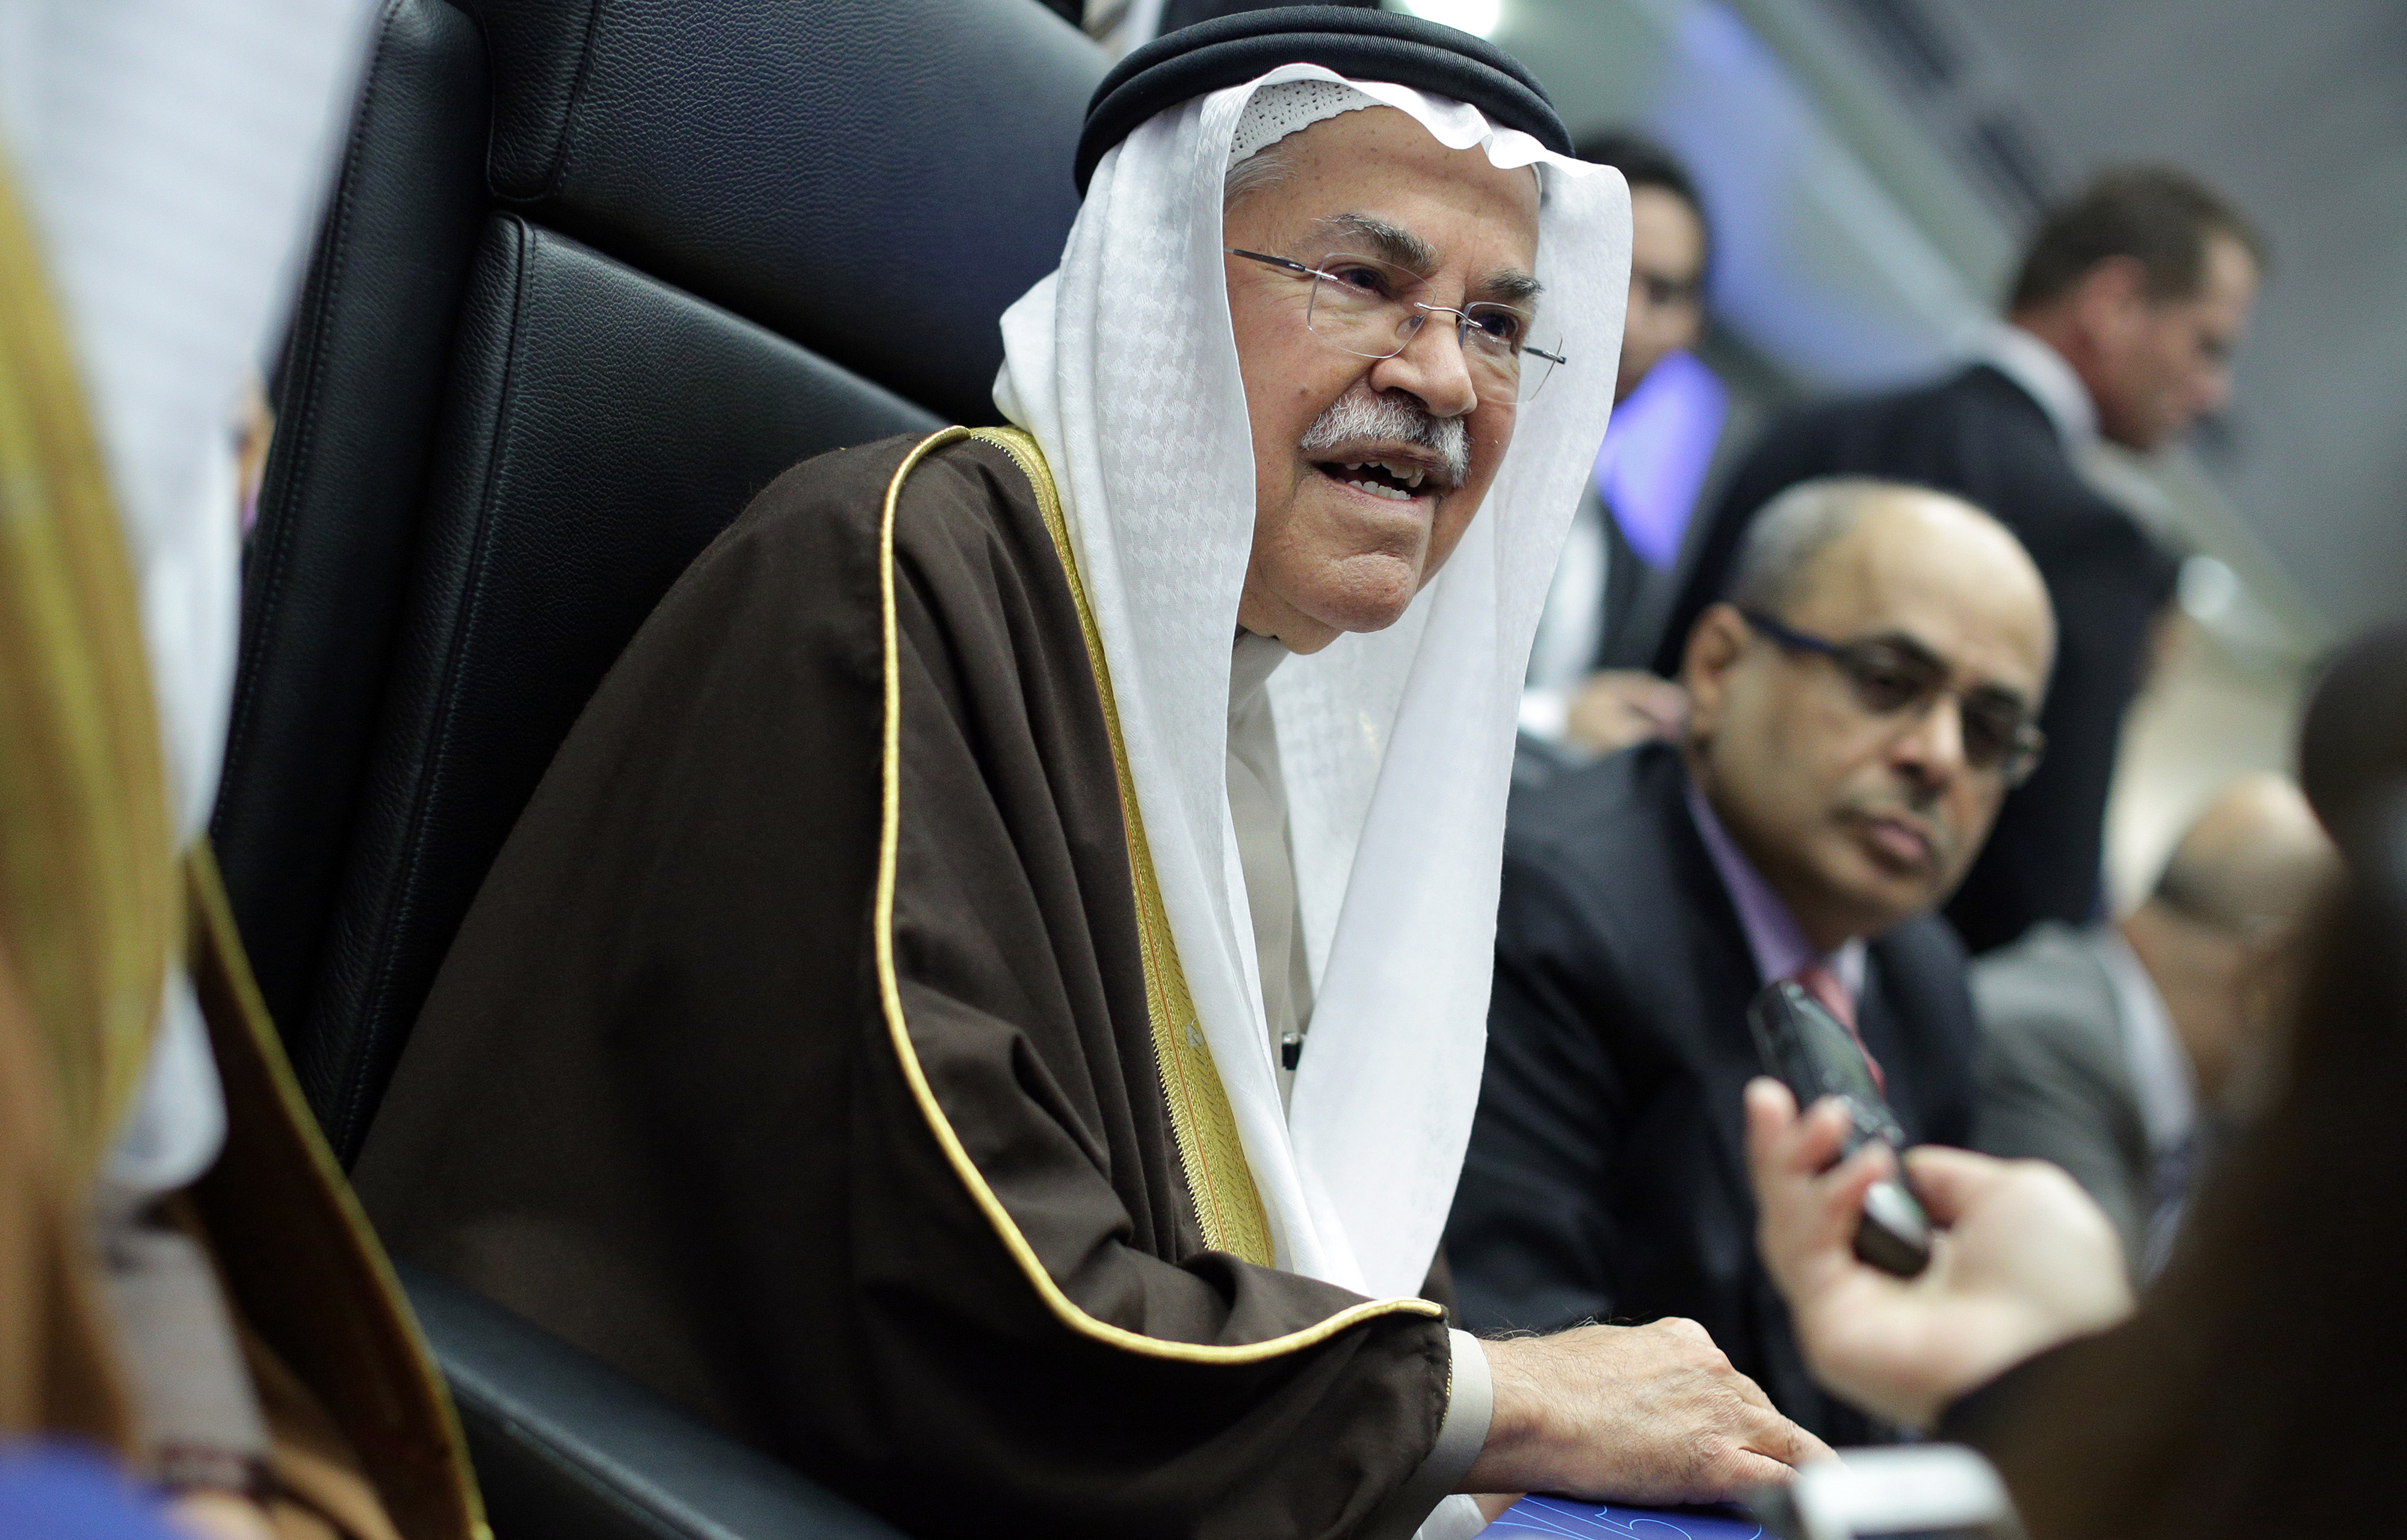 Ali Bin Ibrahim al-Naimi, Saudi Arabia's petroleum and mineral resources minister, speaks to journalists ahead of the 168th Organization of Petroleum Exporting Countries (OPEC) meeting in Vienna, Austria, on Dec. 4, 2015.